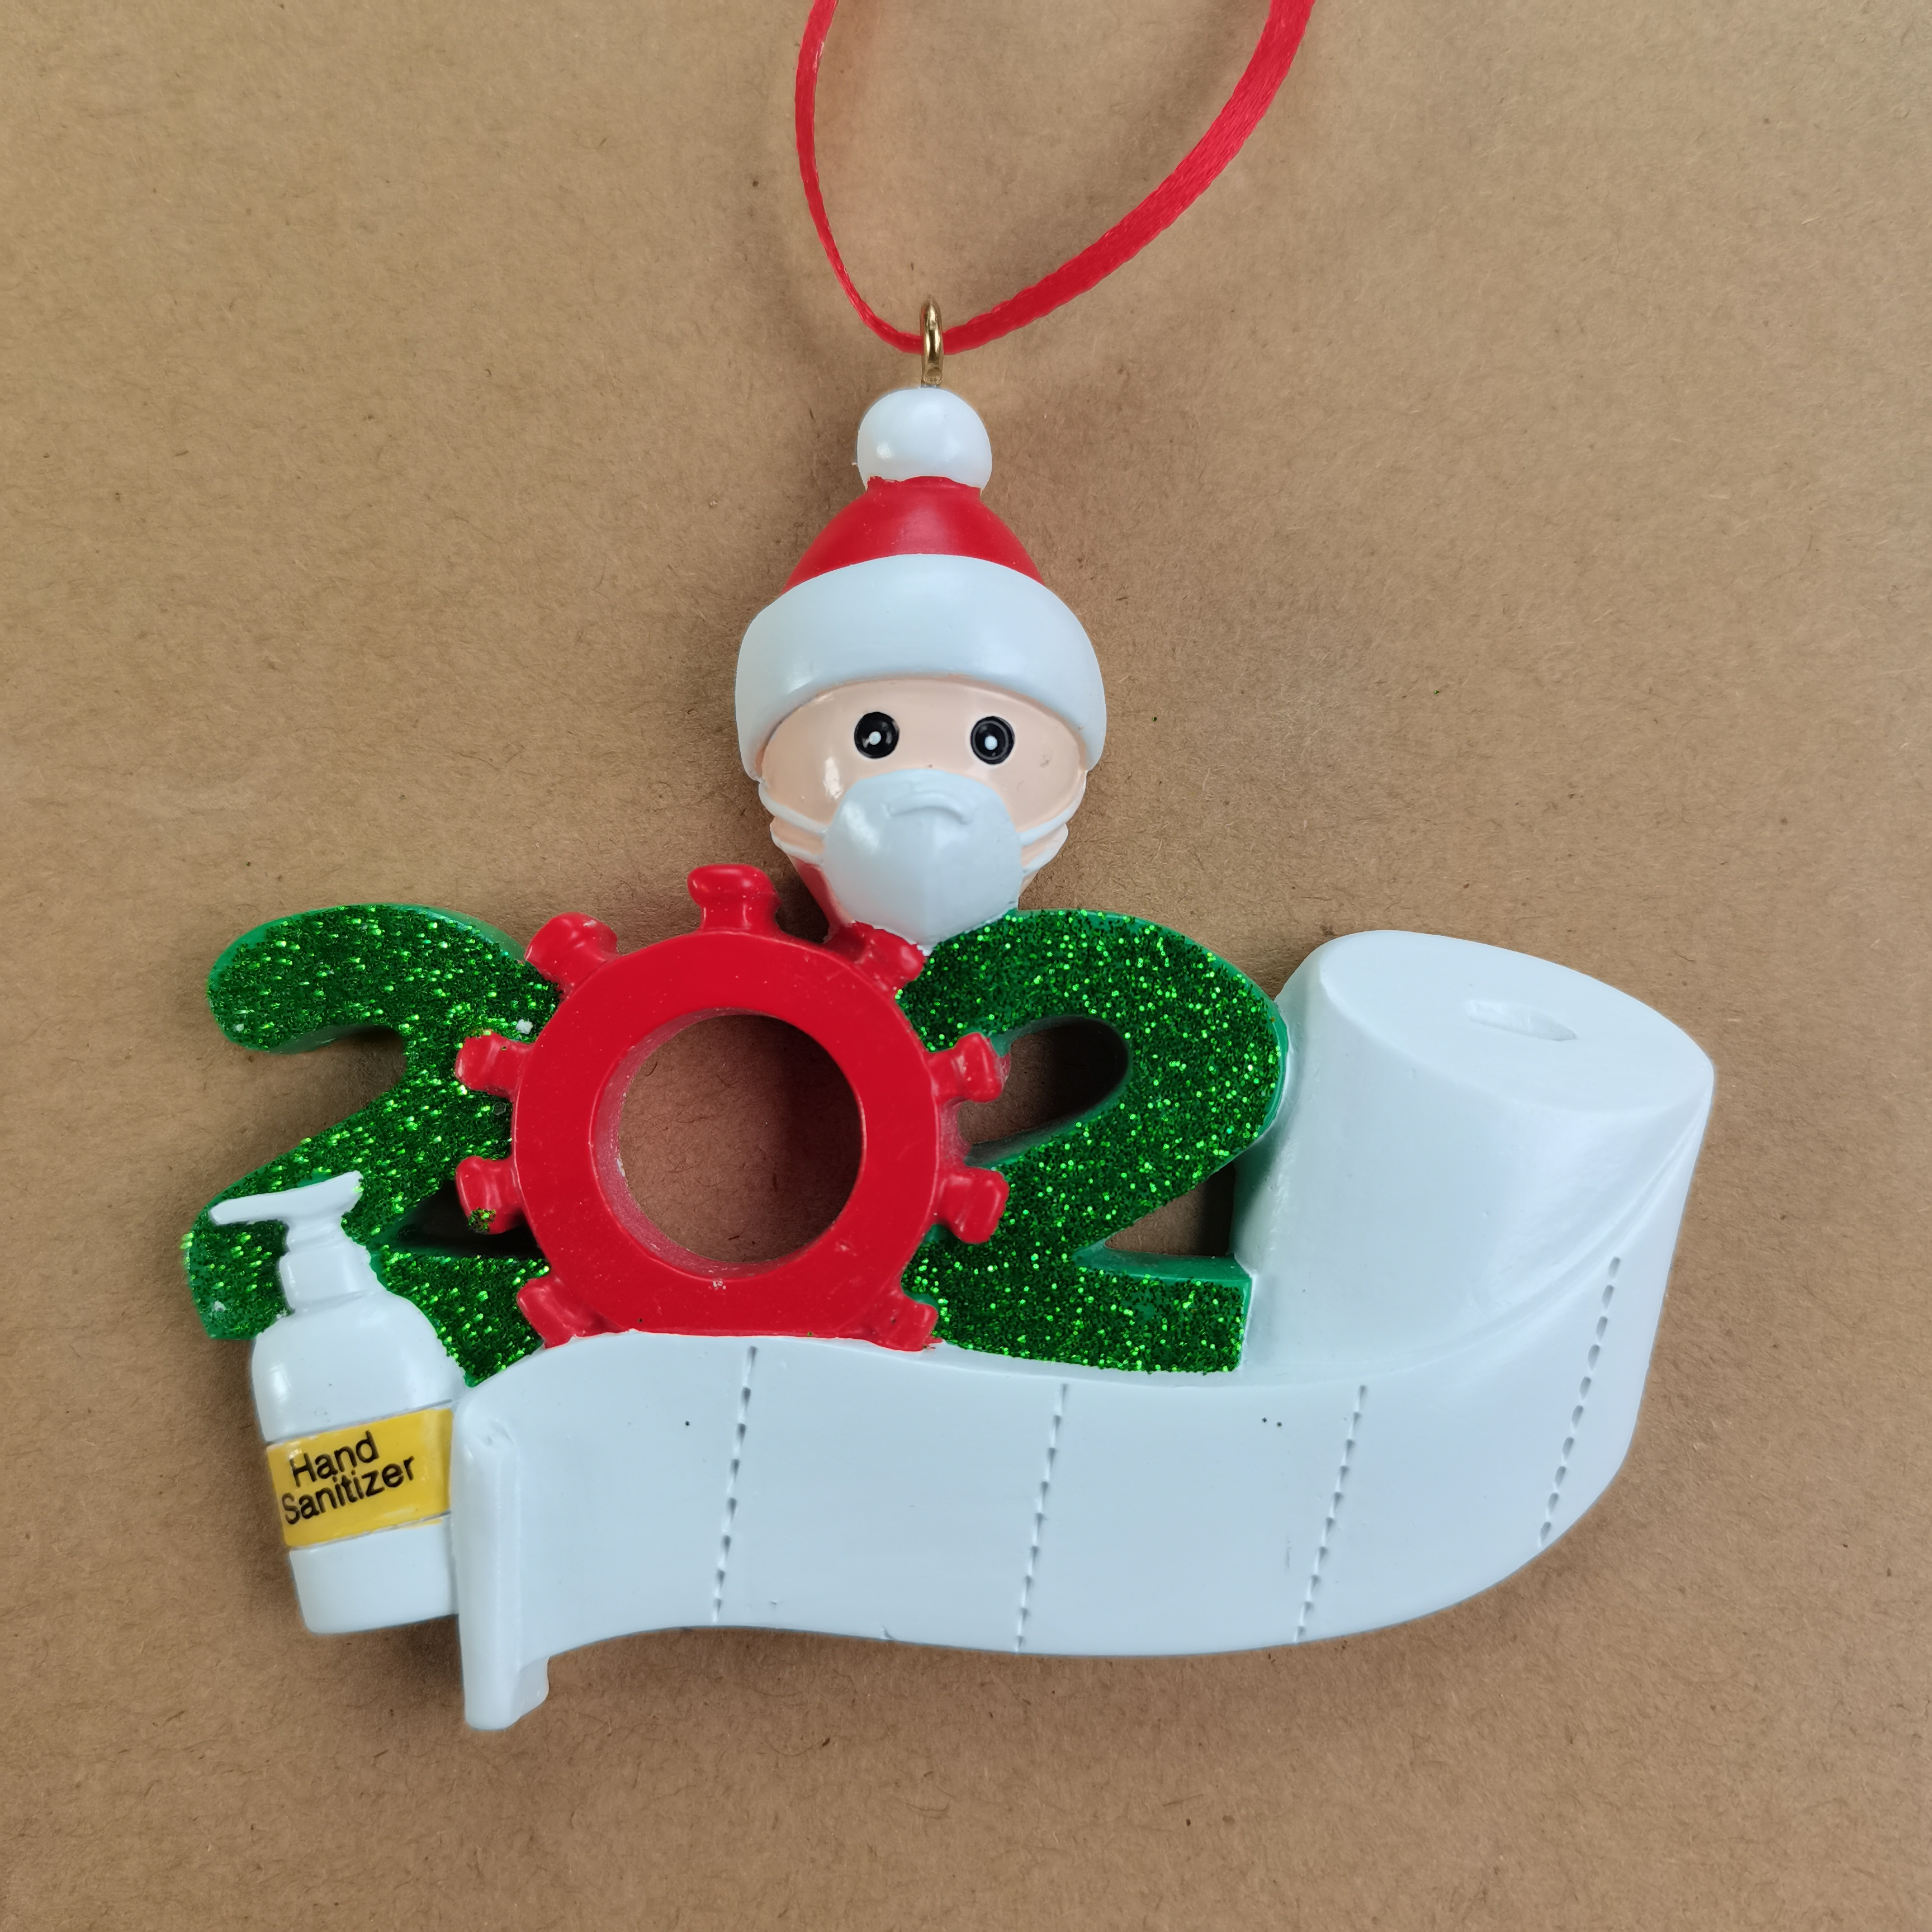 Christmas Hot Sales 2020 Dated Christmas Ornament Fastgame